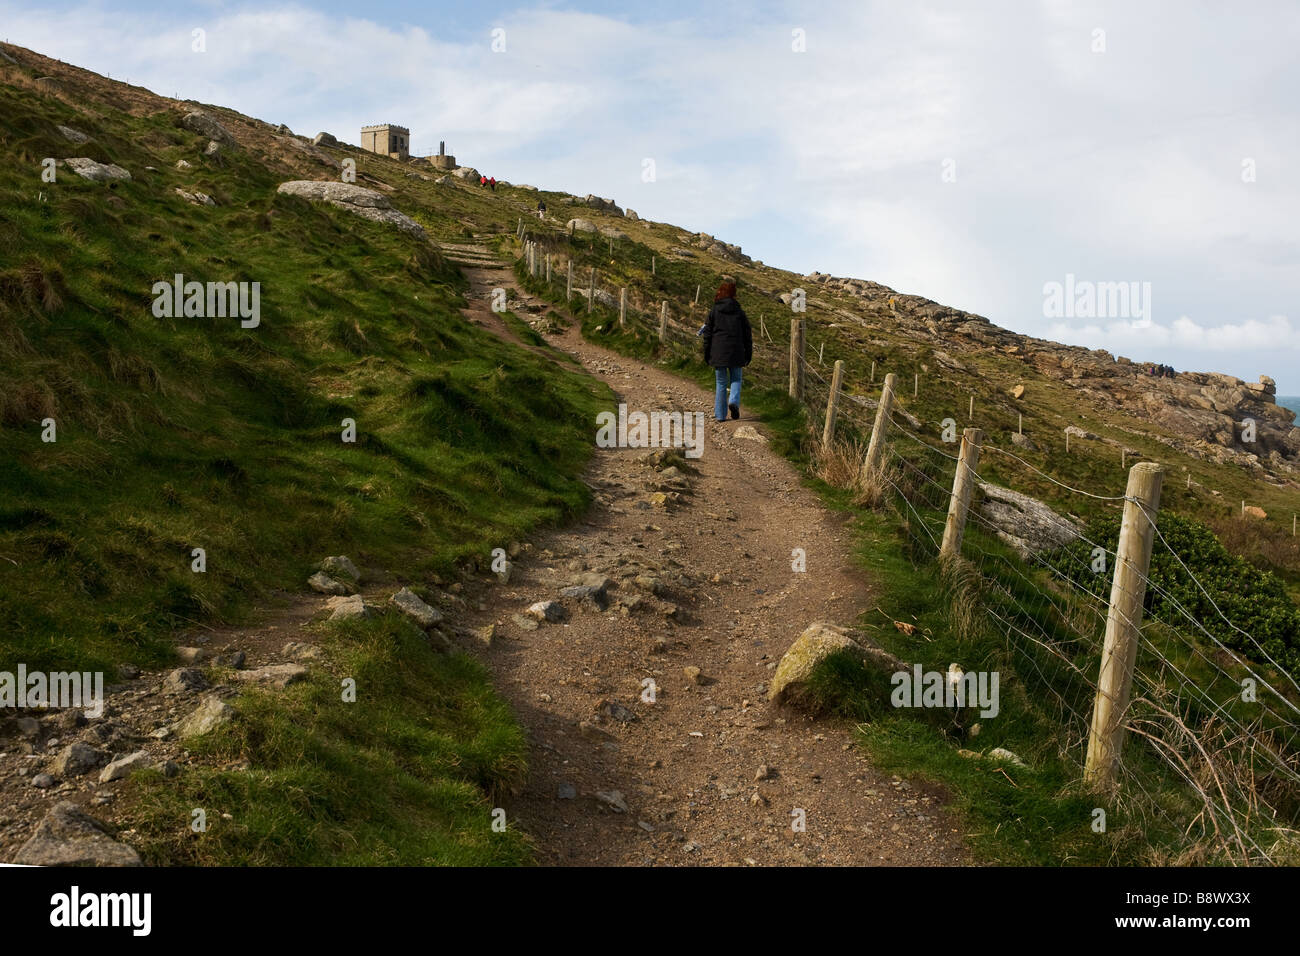 A walker on the path leading up to the old Coastguard Lookout station at Sennen in Cornwall. - Stock Image